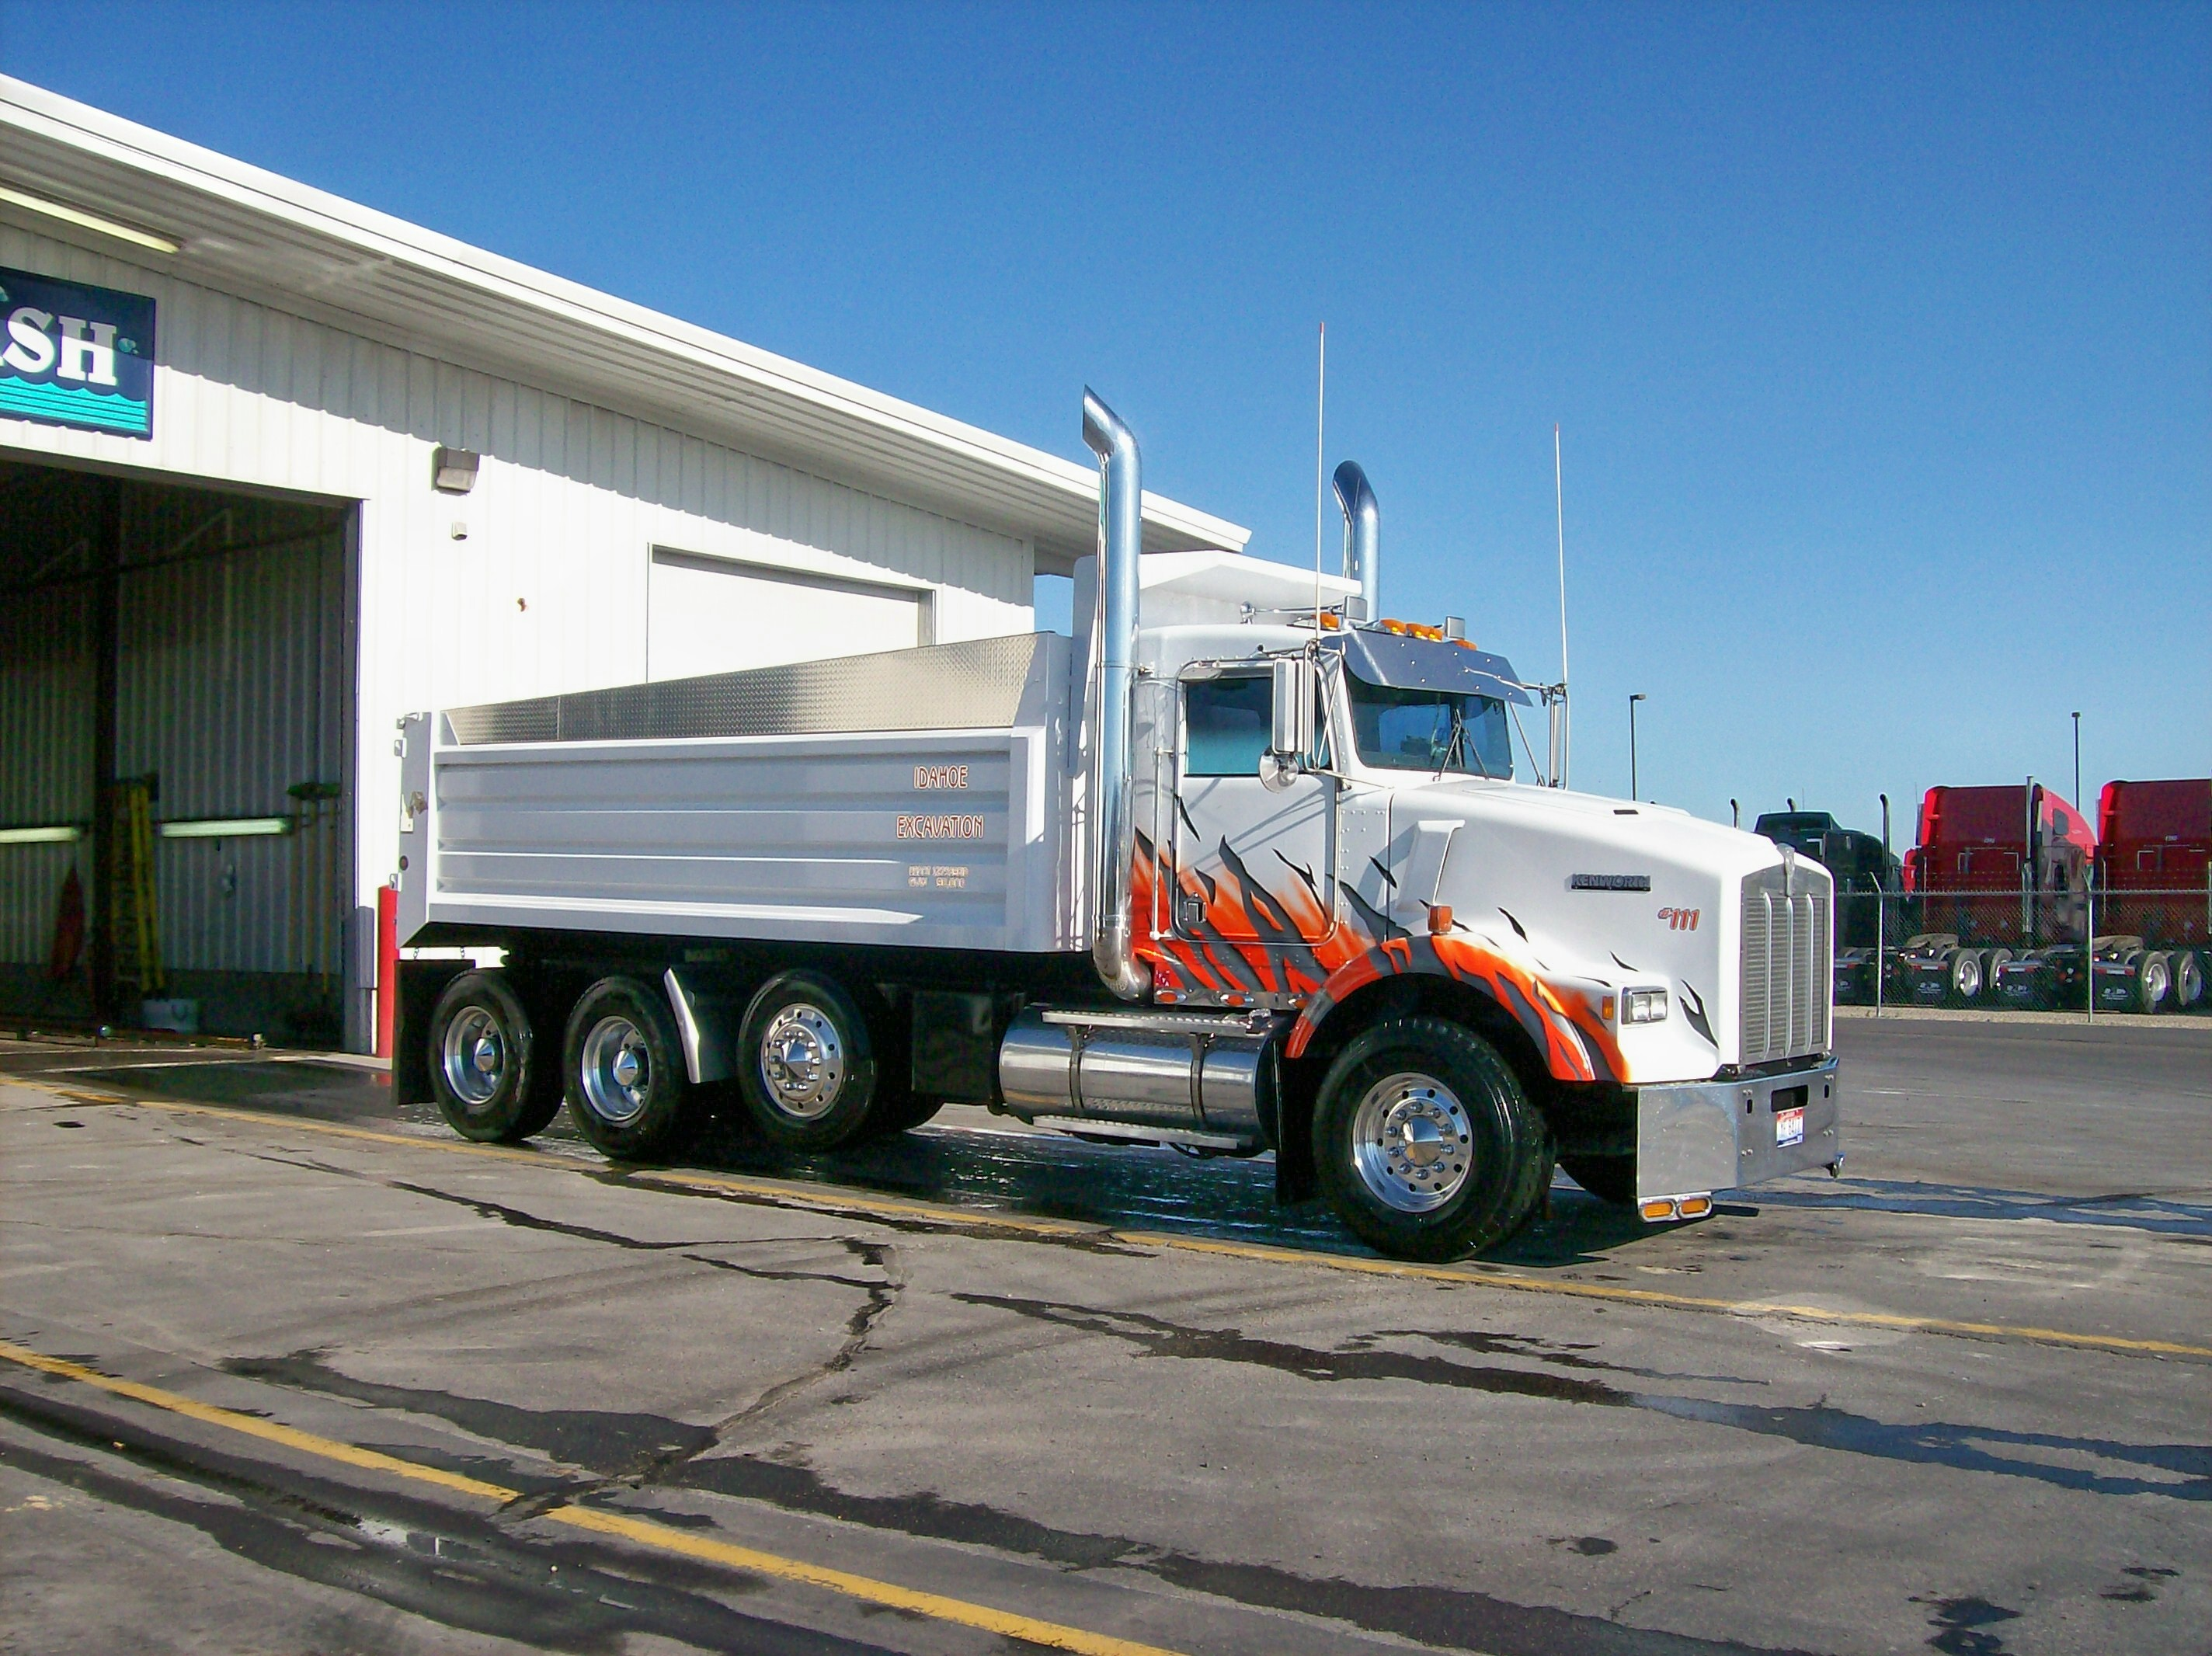 kenworth images - photo #39